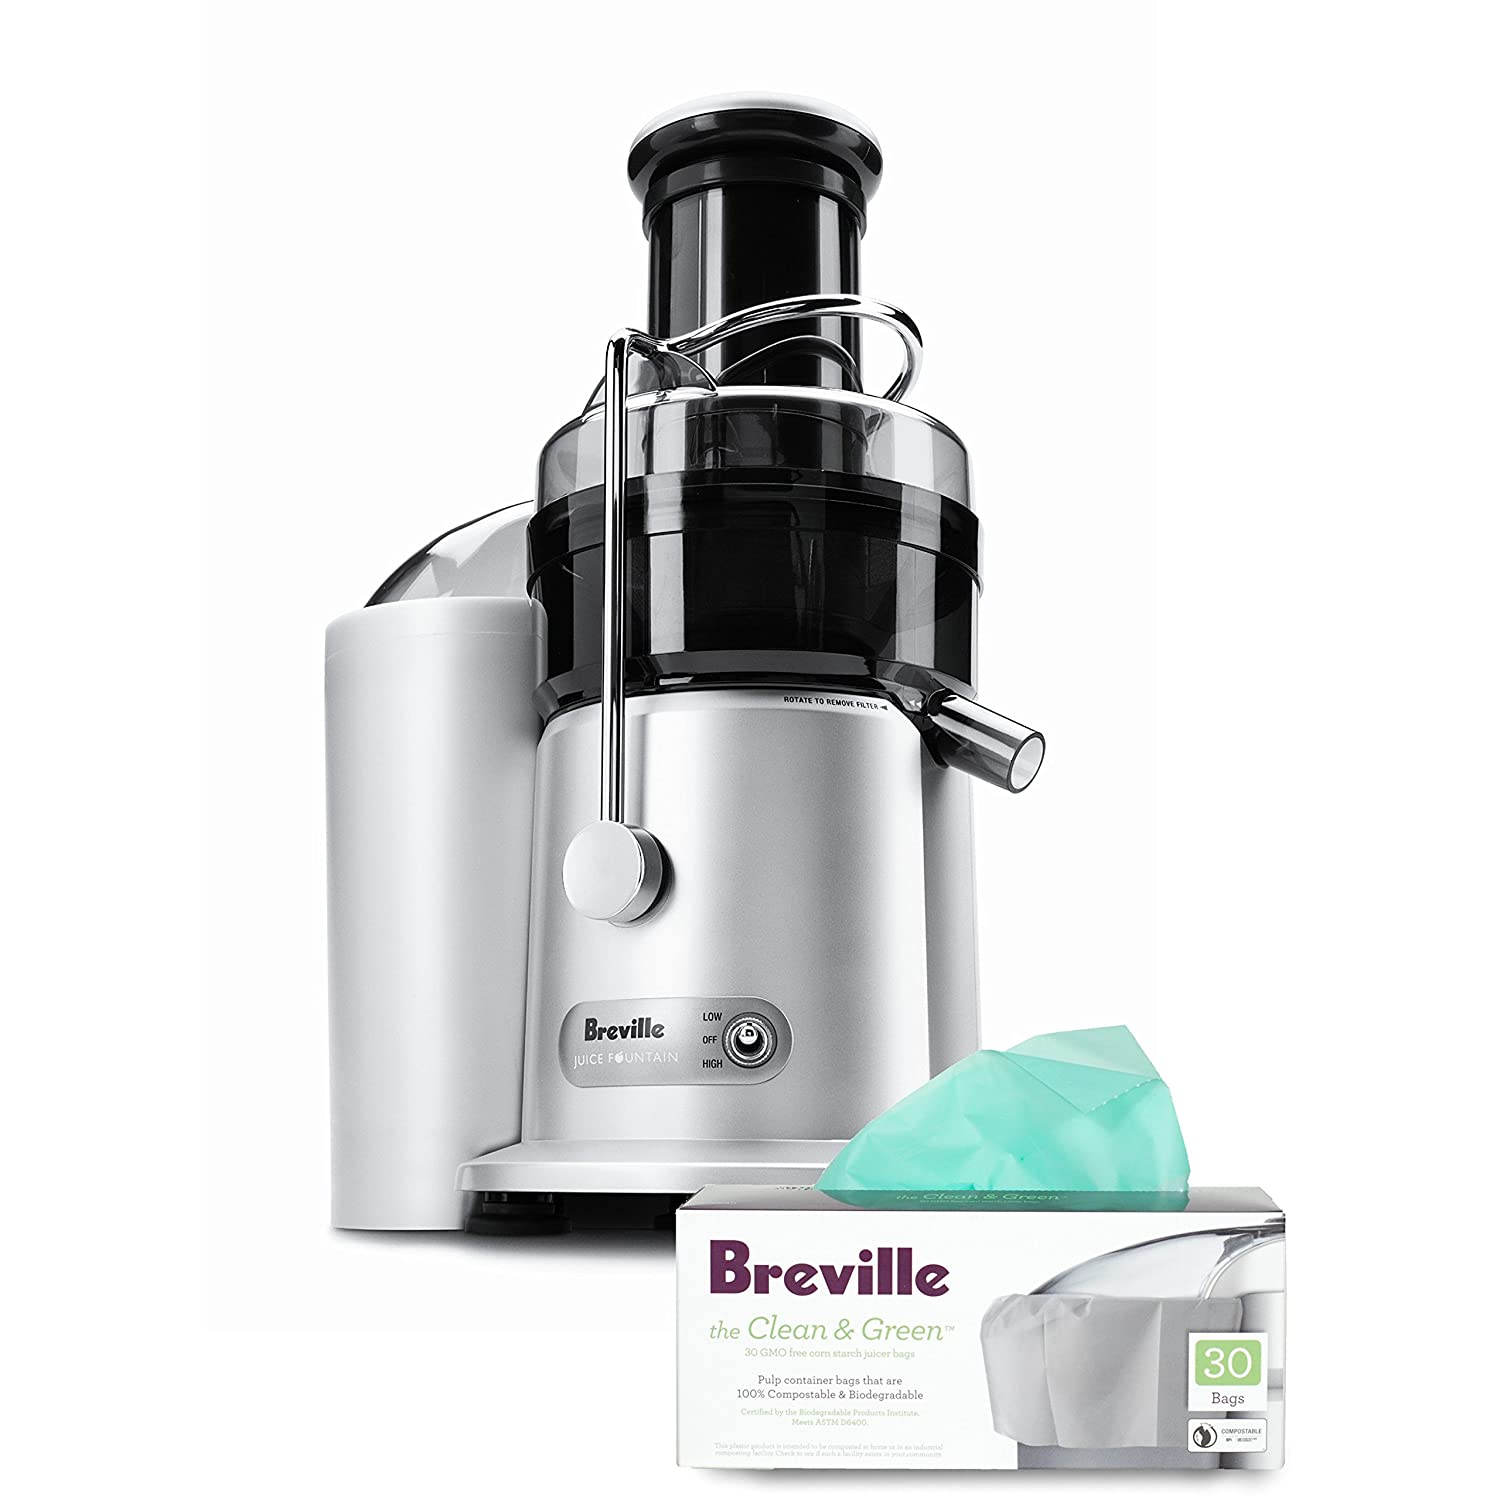 Breville Heavy-Grade Polymer Juice Fountain Plus with Free Pulp Container Bags